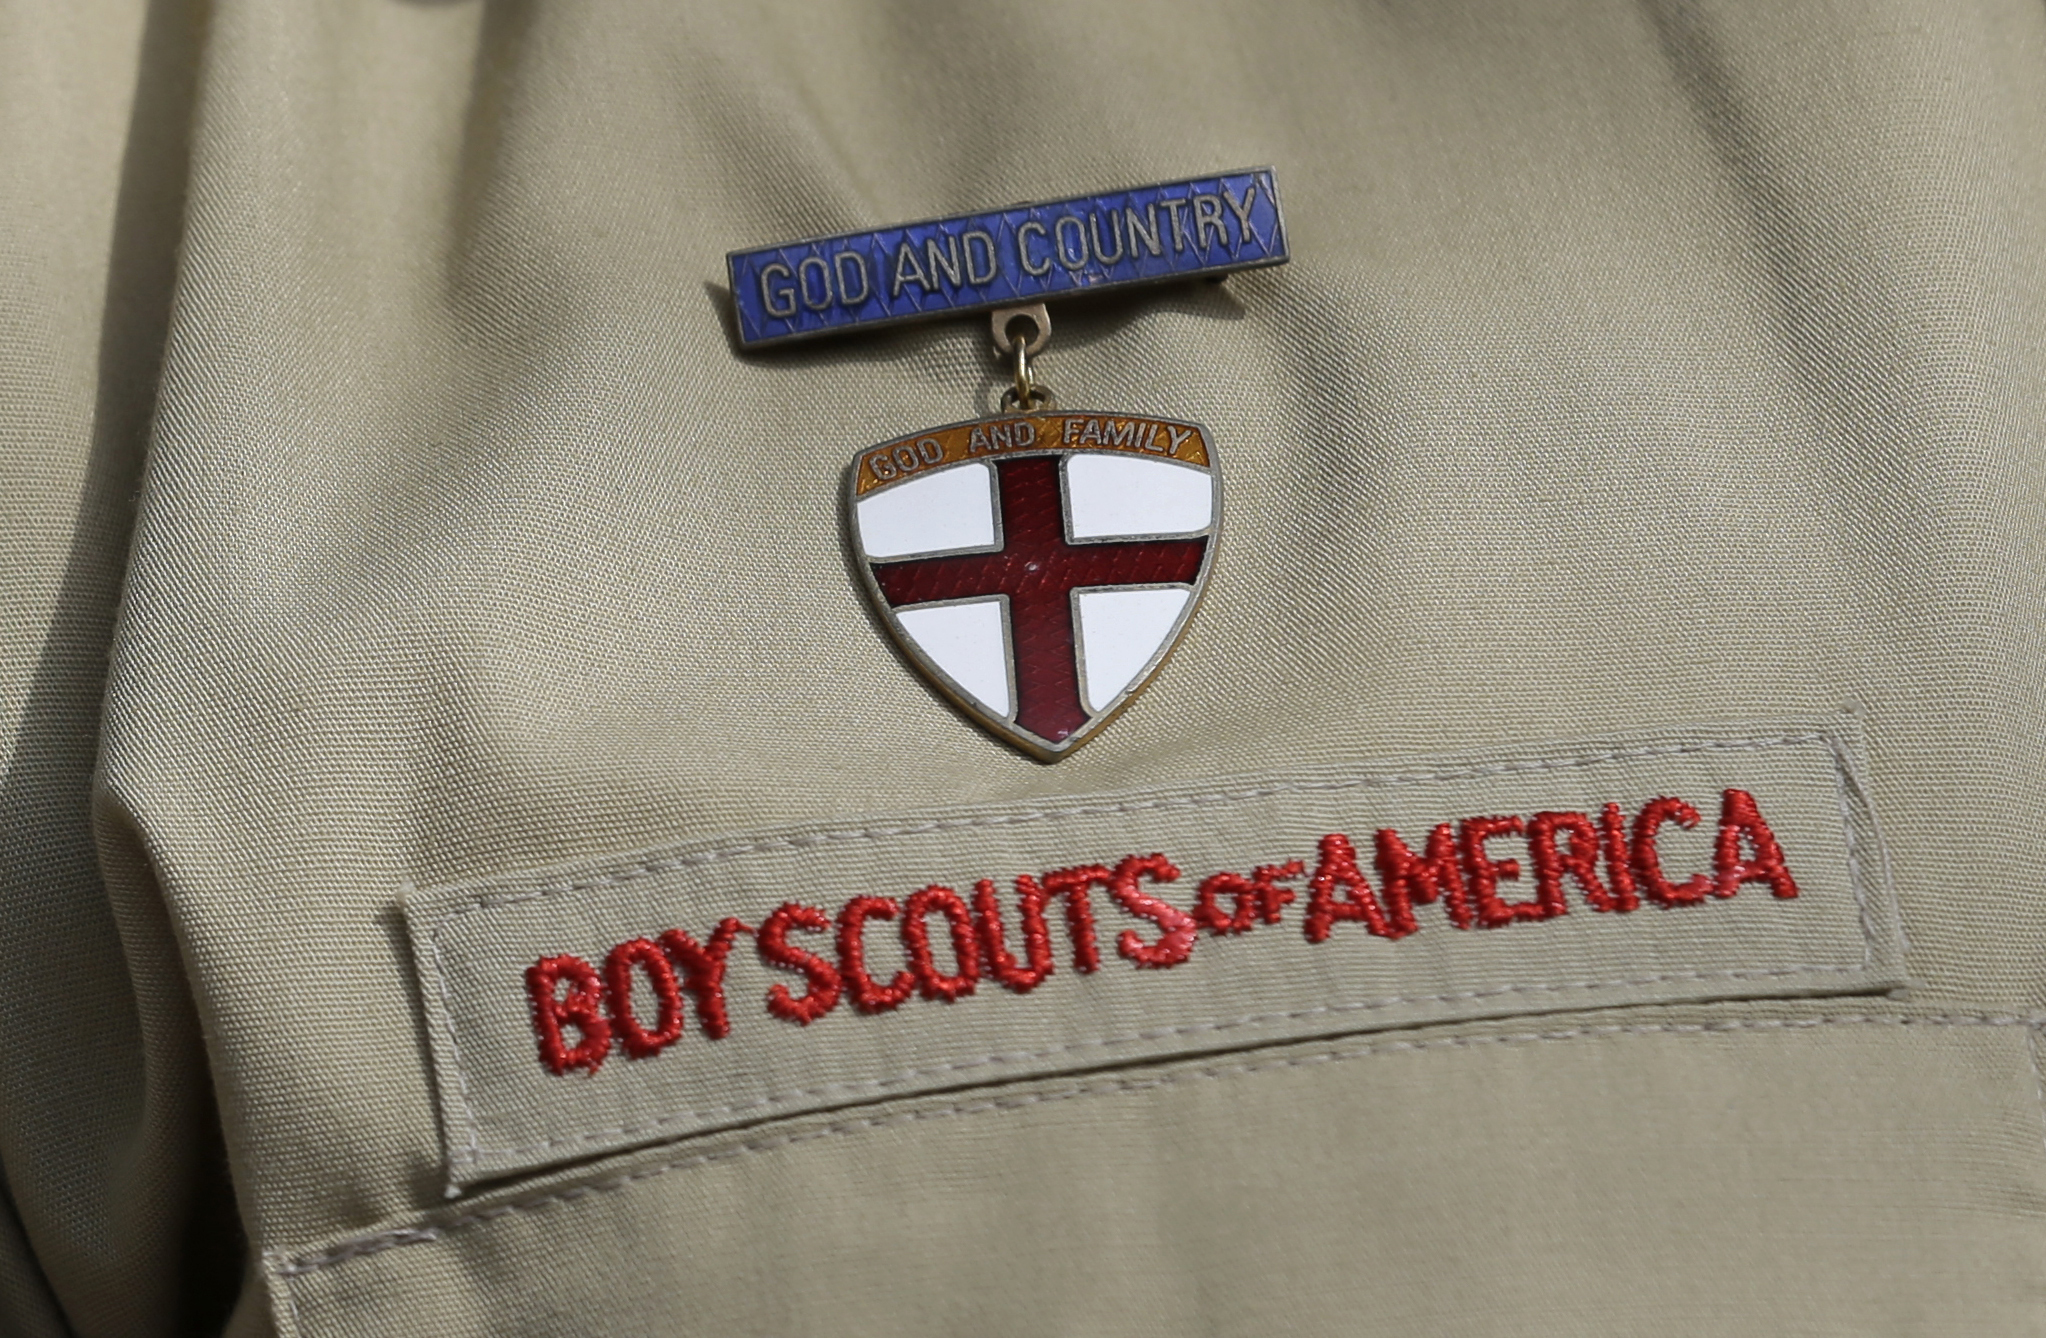 Boy_Scouts_Sex_Abuse_Prevention_42028-159532.jpg84911240